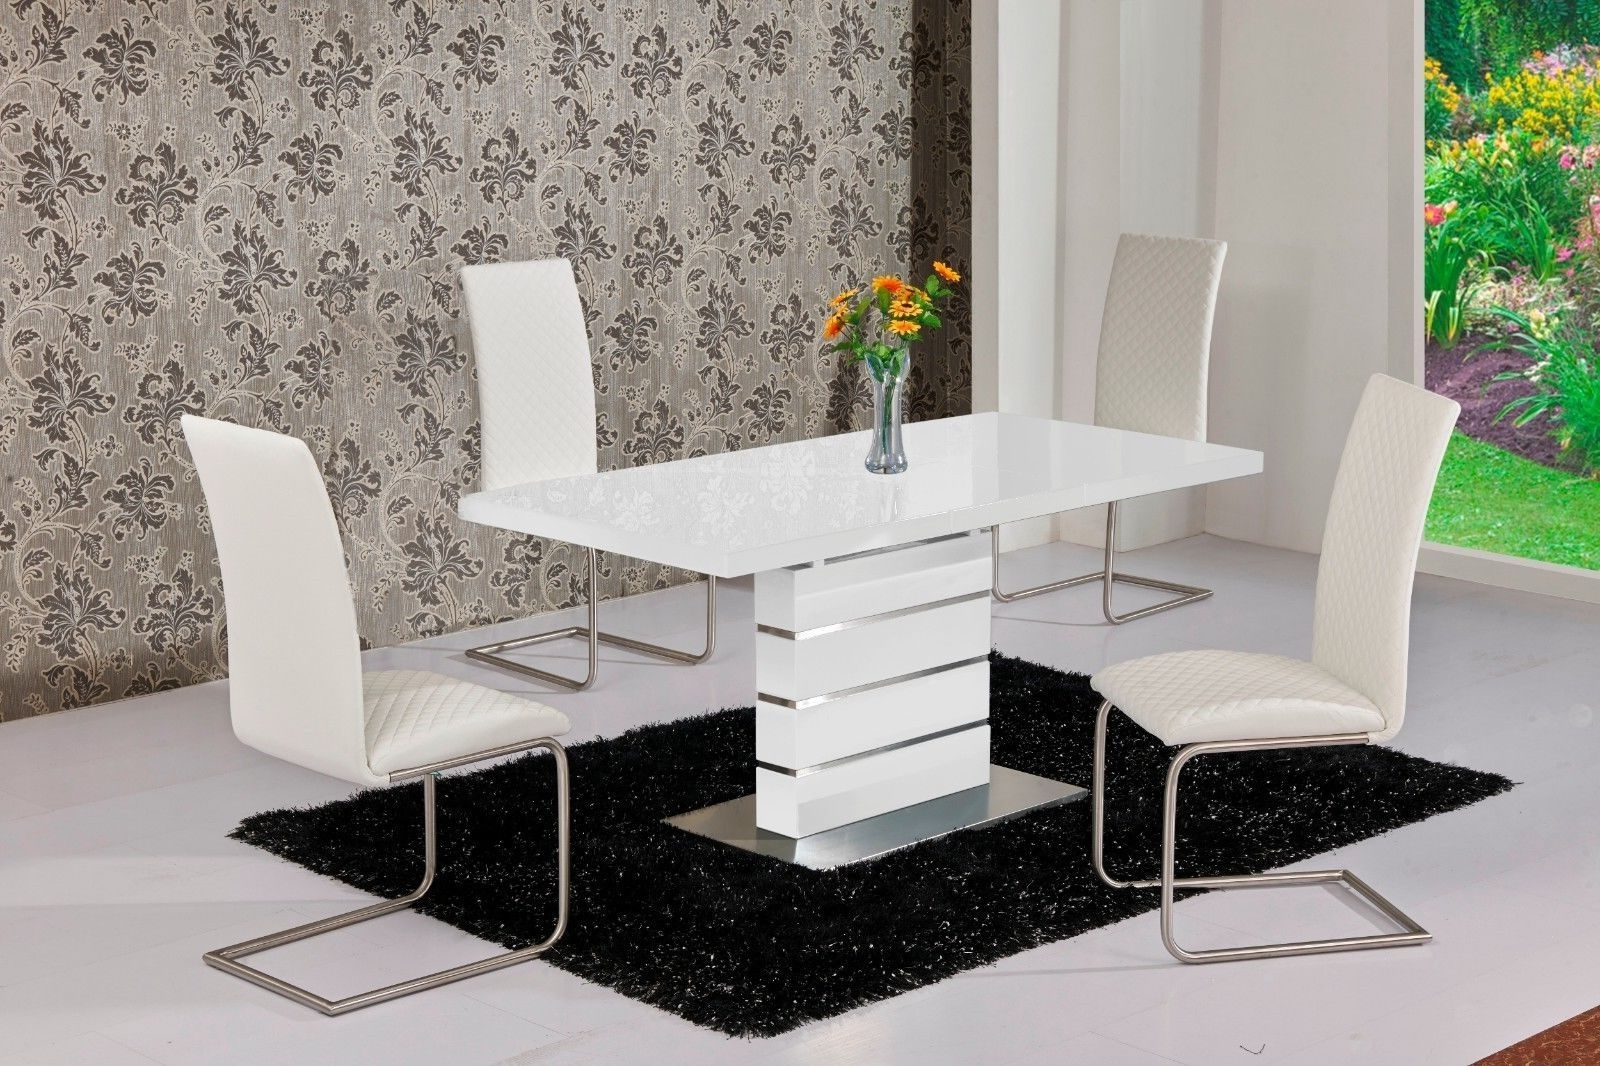 Mace High Gloss Extending 120 160 Dining Table & Chair Set – White For 2017 Extending Dining Tables And Chairs (View 3 of 25)